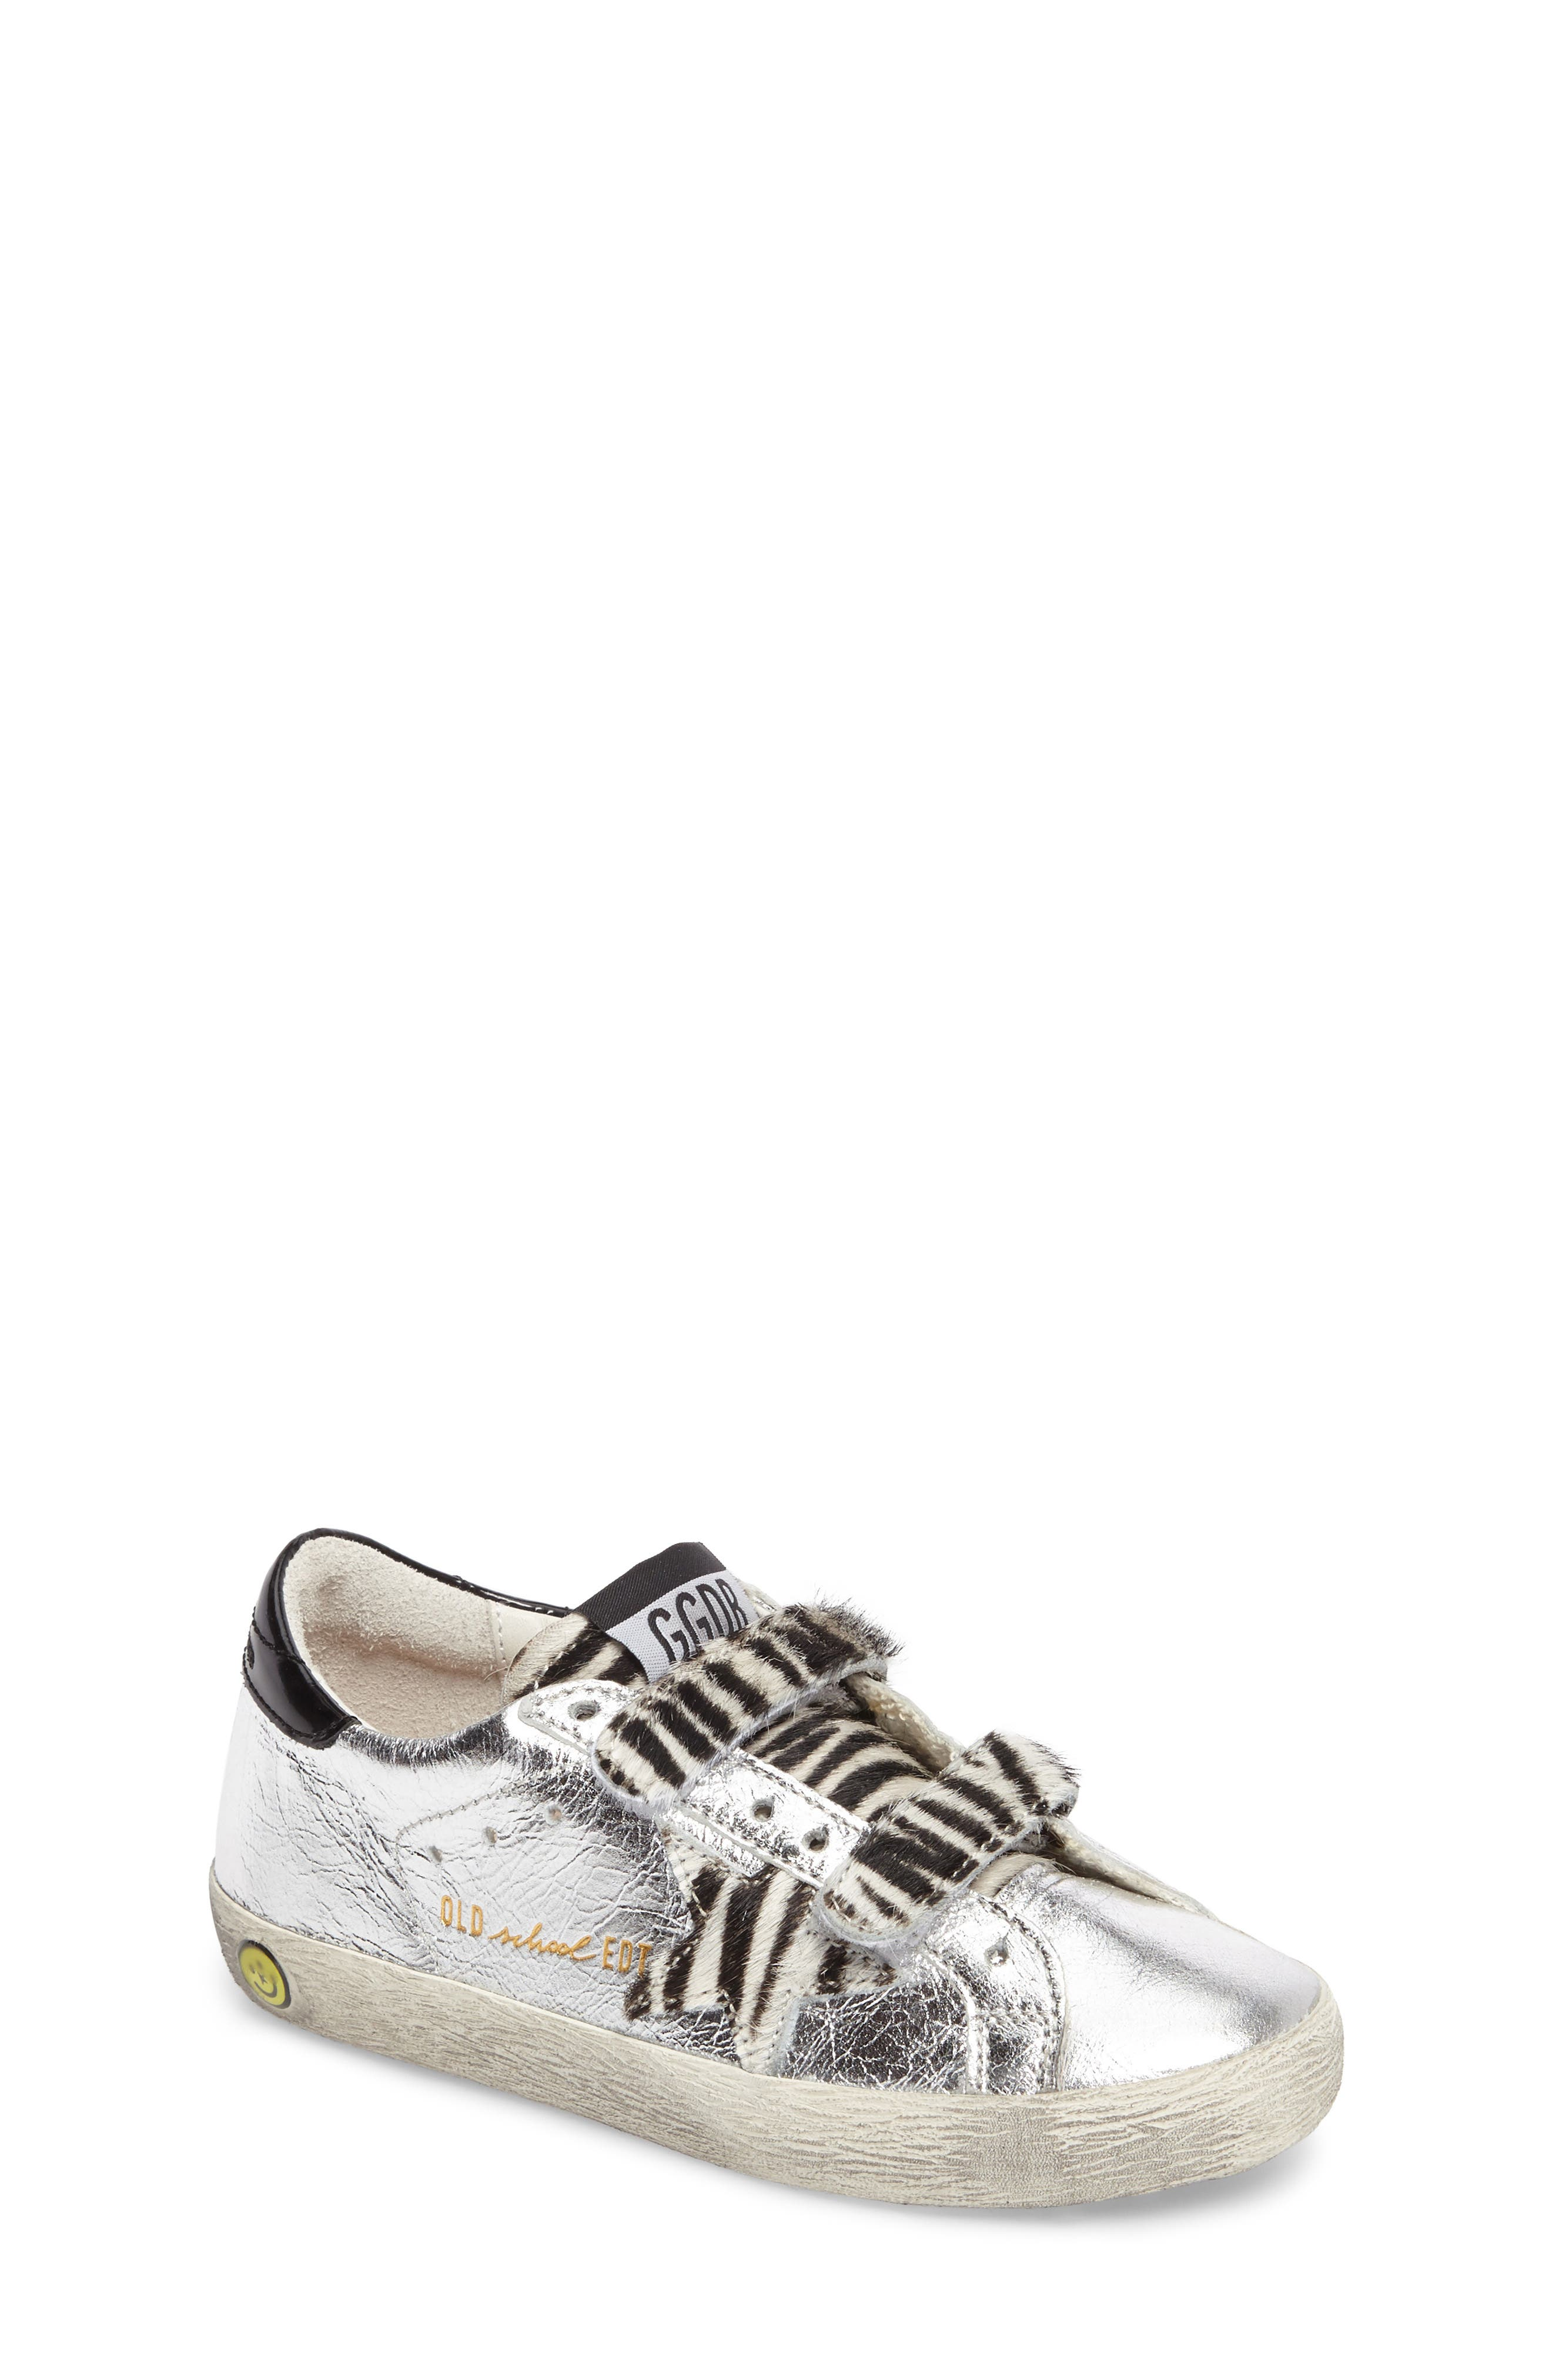 Superstar Old School Sneaker,                             Main thumbnail 1, color,                             Silver Leather